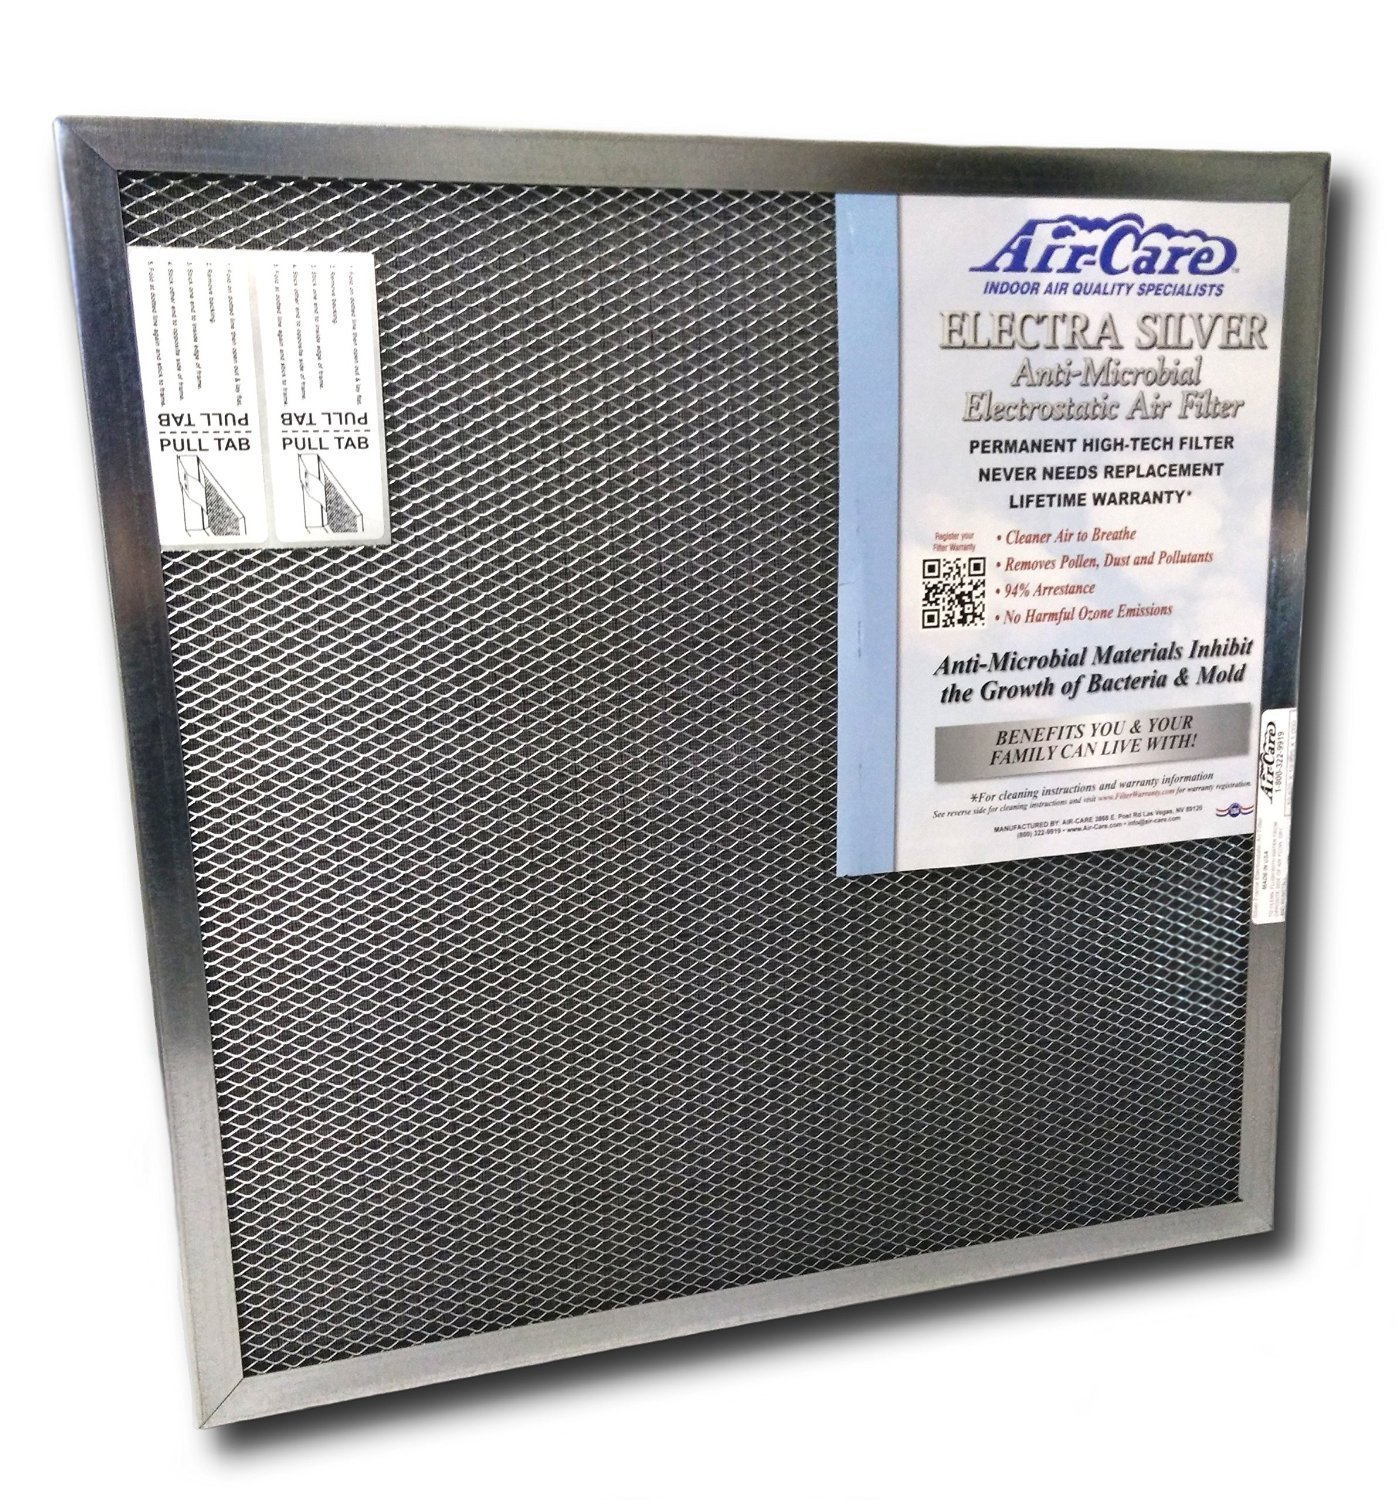 Best furnace air filters for allergies - Electrostatic Washable Permanent A C Furnace Air Filter 16 X 25 X 1 Inch Amazon Com